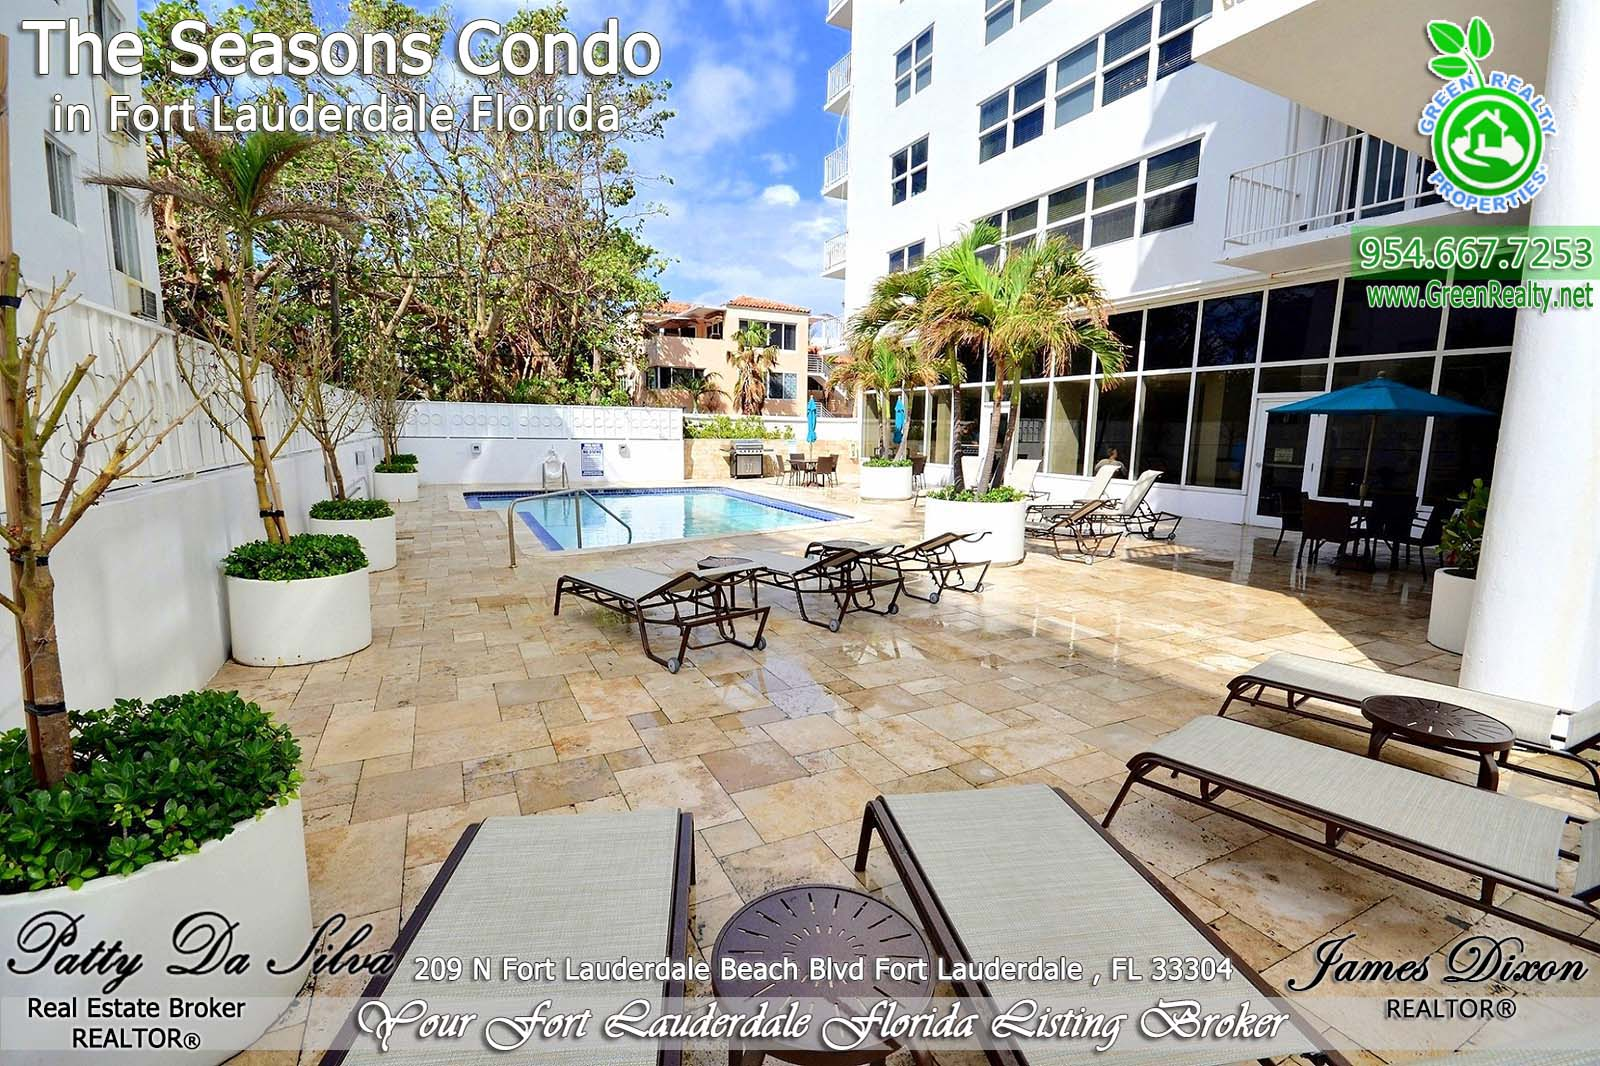 Fort Lauderdale Ocean Front Real Estate and Condos For Sale(23)